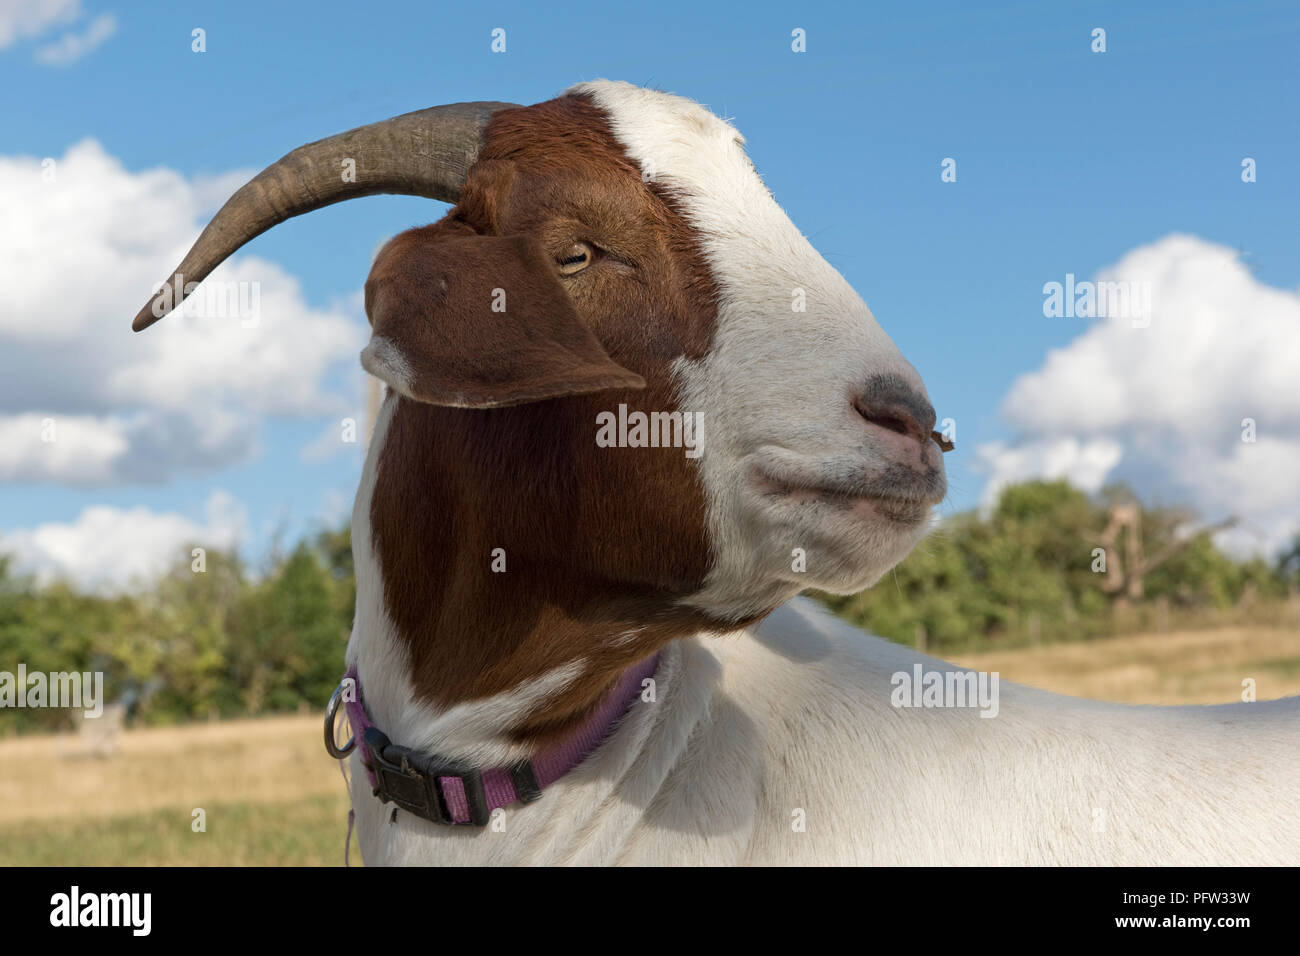 Head Of A Neutered Wether Boer Goat Pet With A Purple Collar And